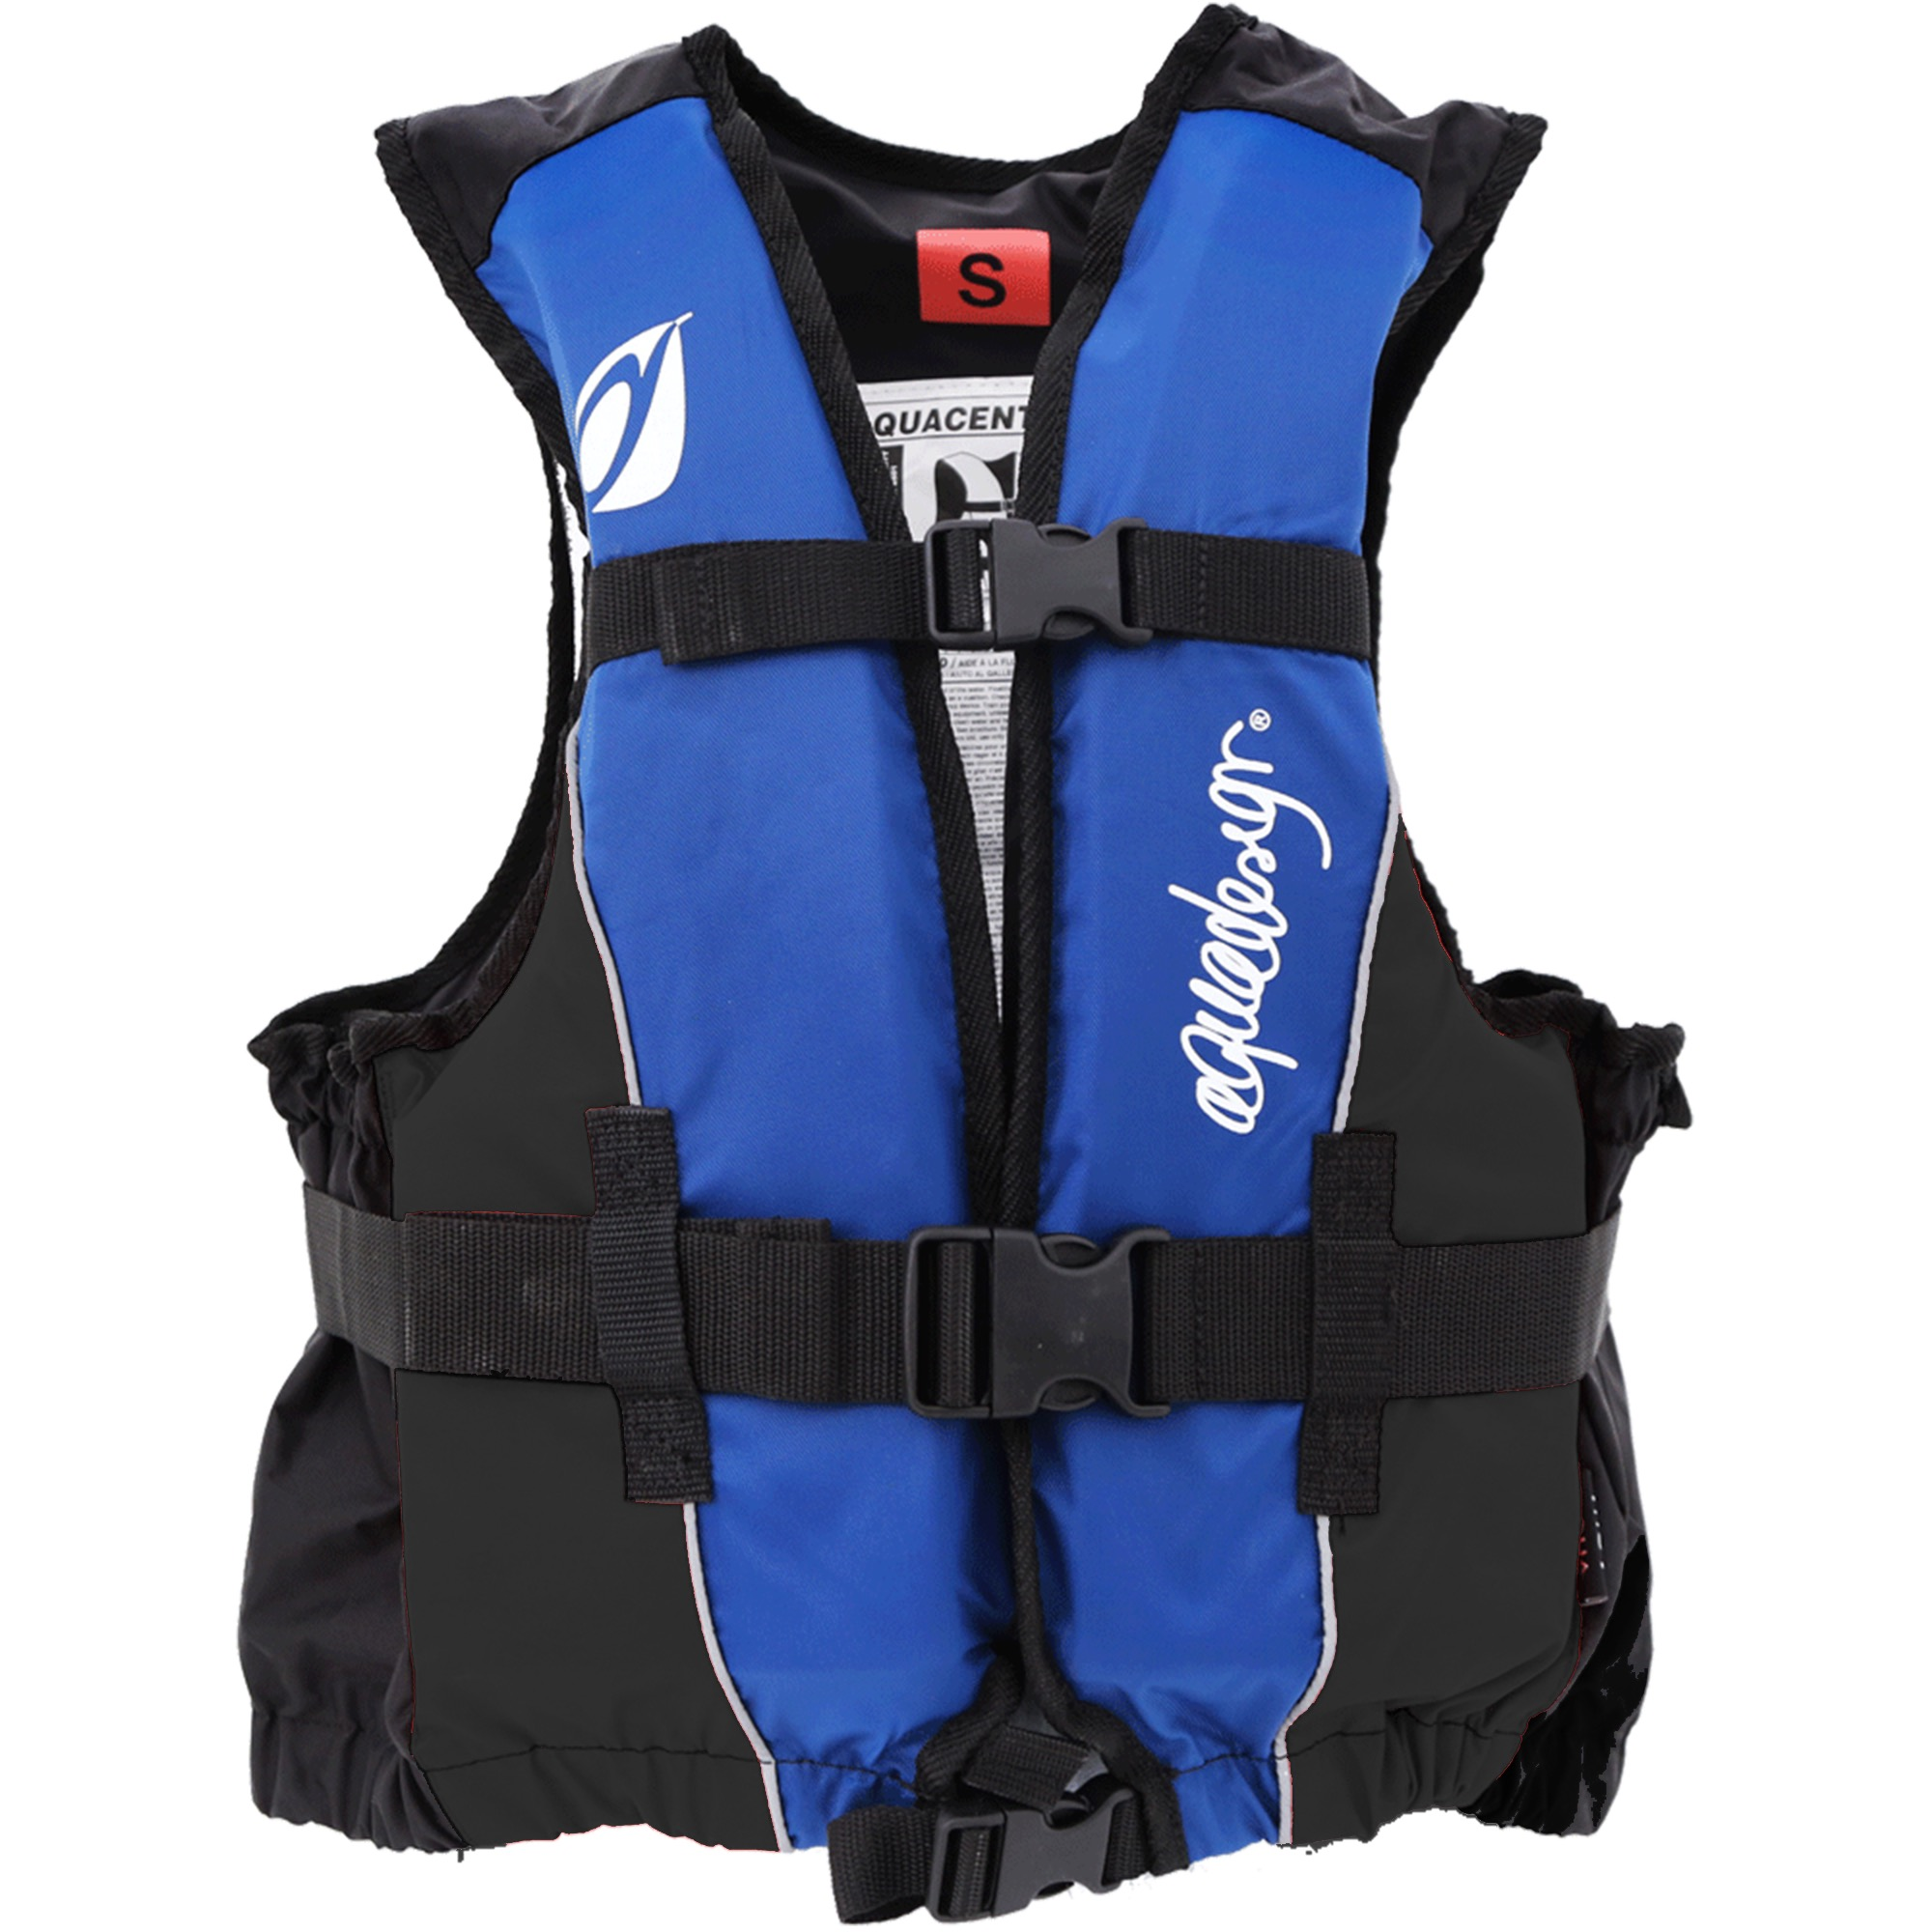 GILET DE KAYAK CENTRE CLUB